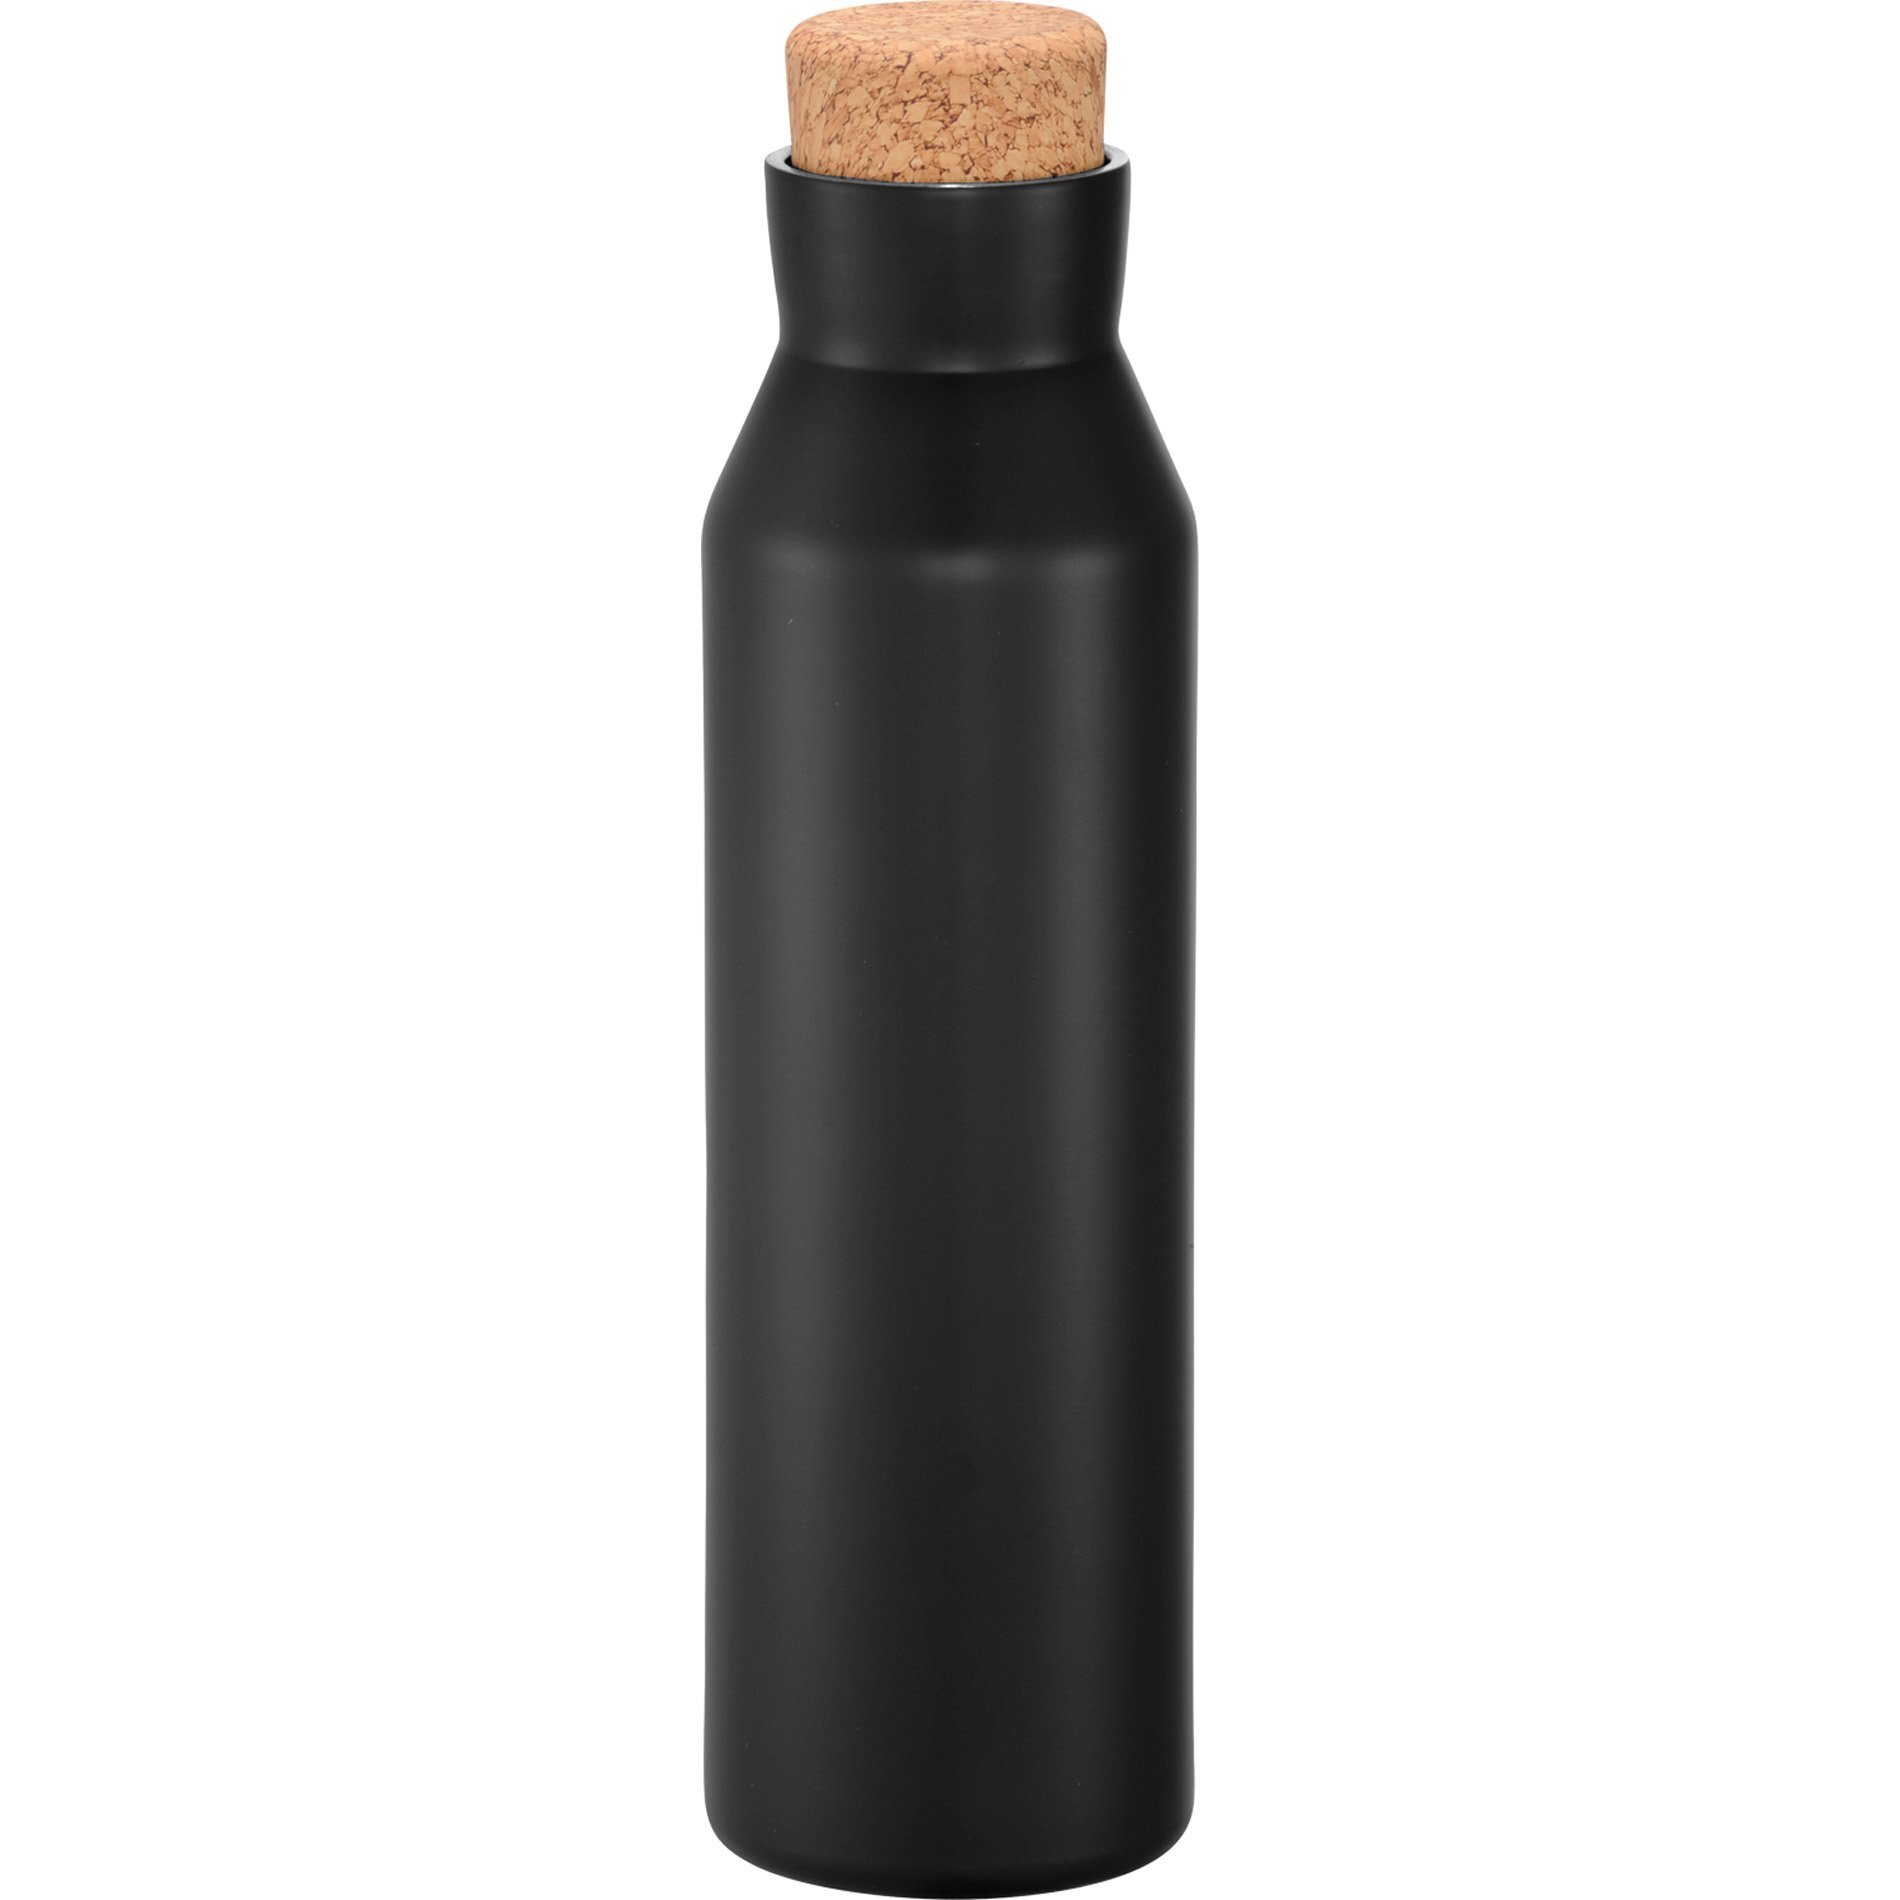 Norse Copper Vacuum Insulated Bottle w/ Cork Top, 20oz. - Free Set Up Charges!